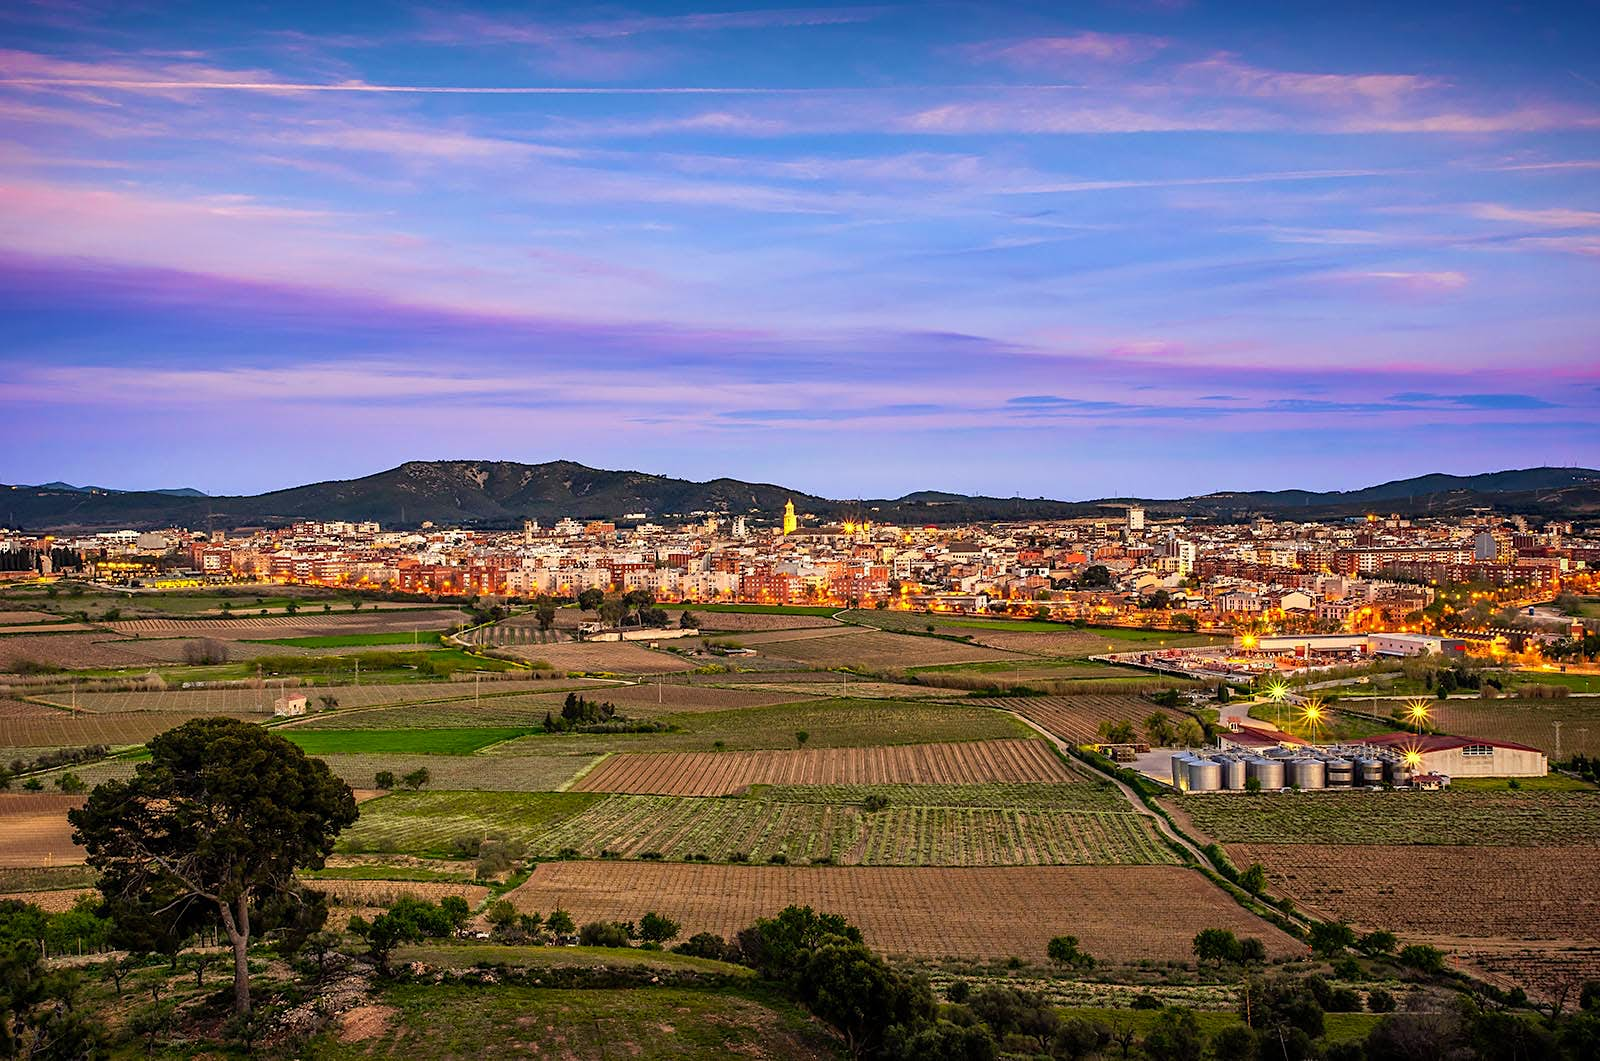 Panoramic view of Vilafranca del Penedès in Catalonia, Spain, at sunset.